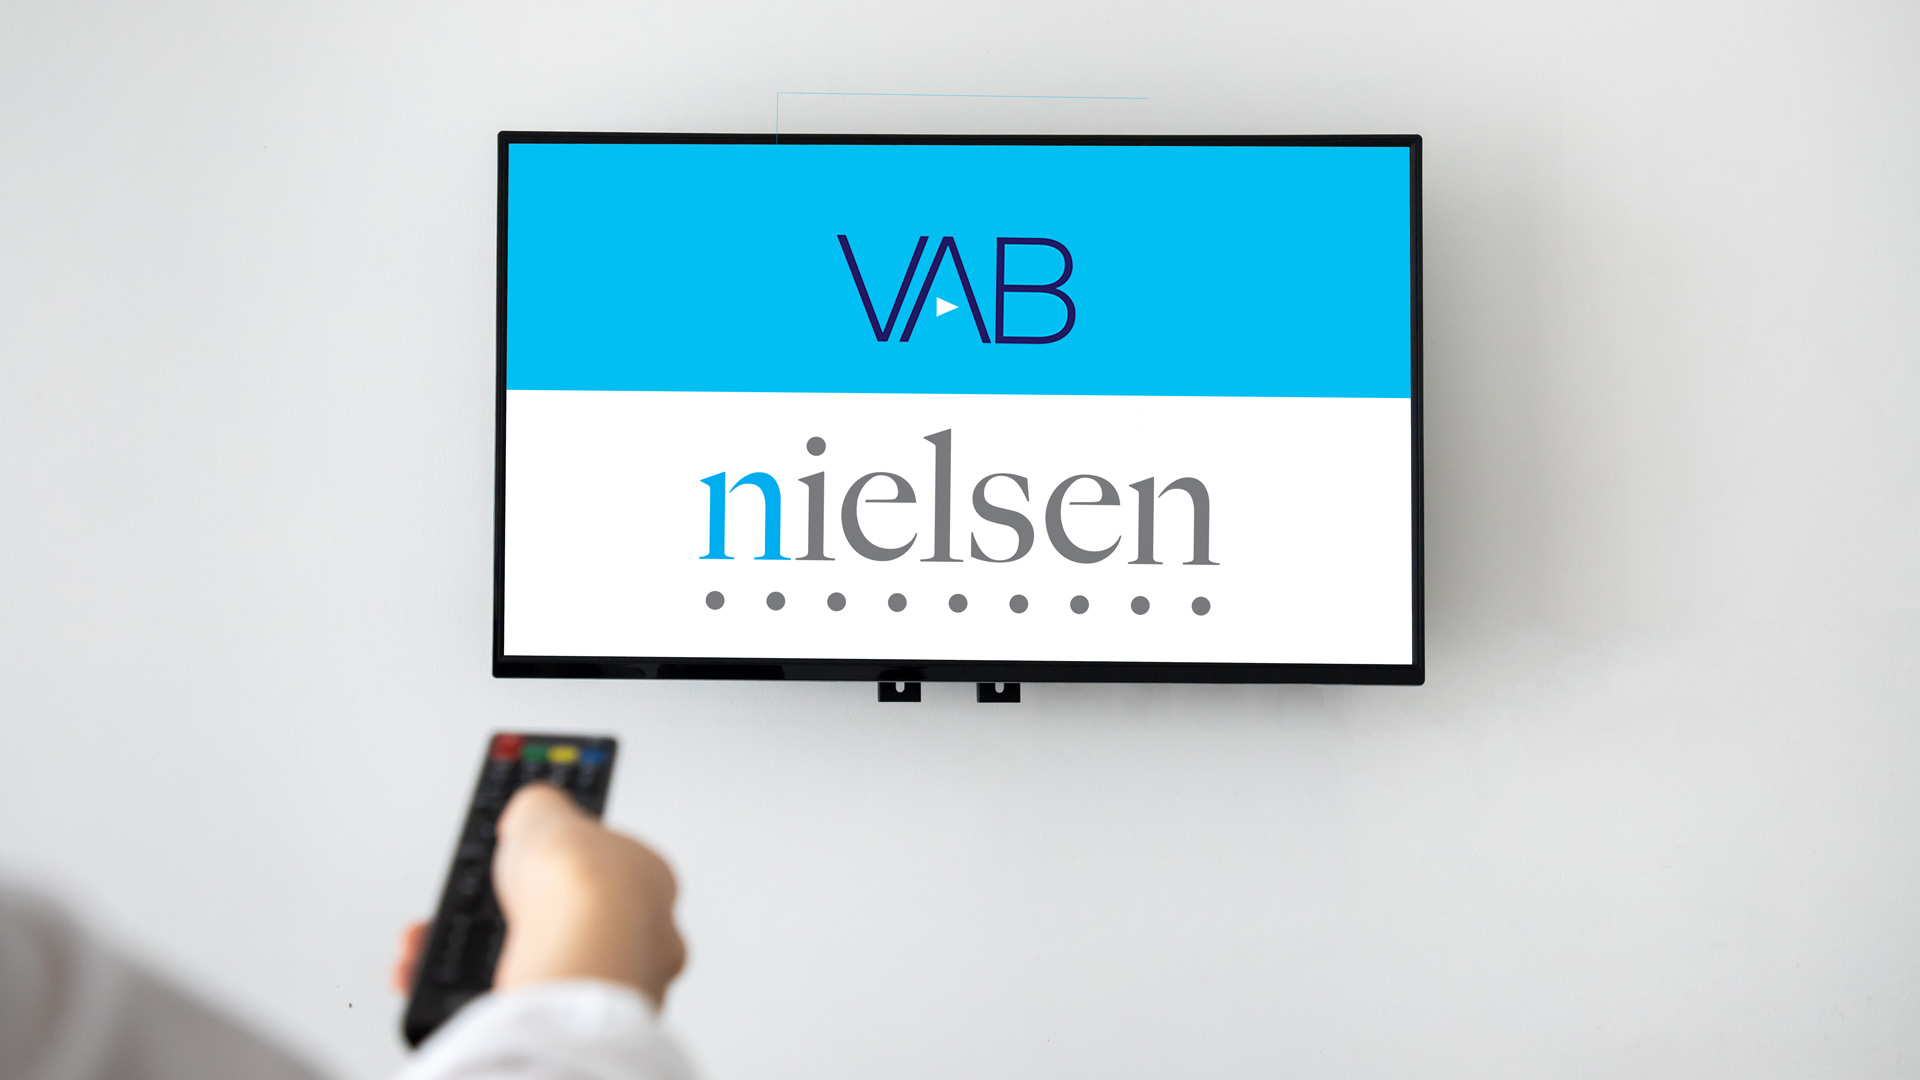 The logos for the Video Advertising Bureau and Nielsen are displayed on a TV screen.